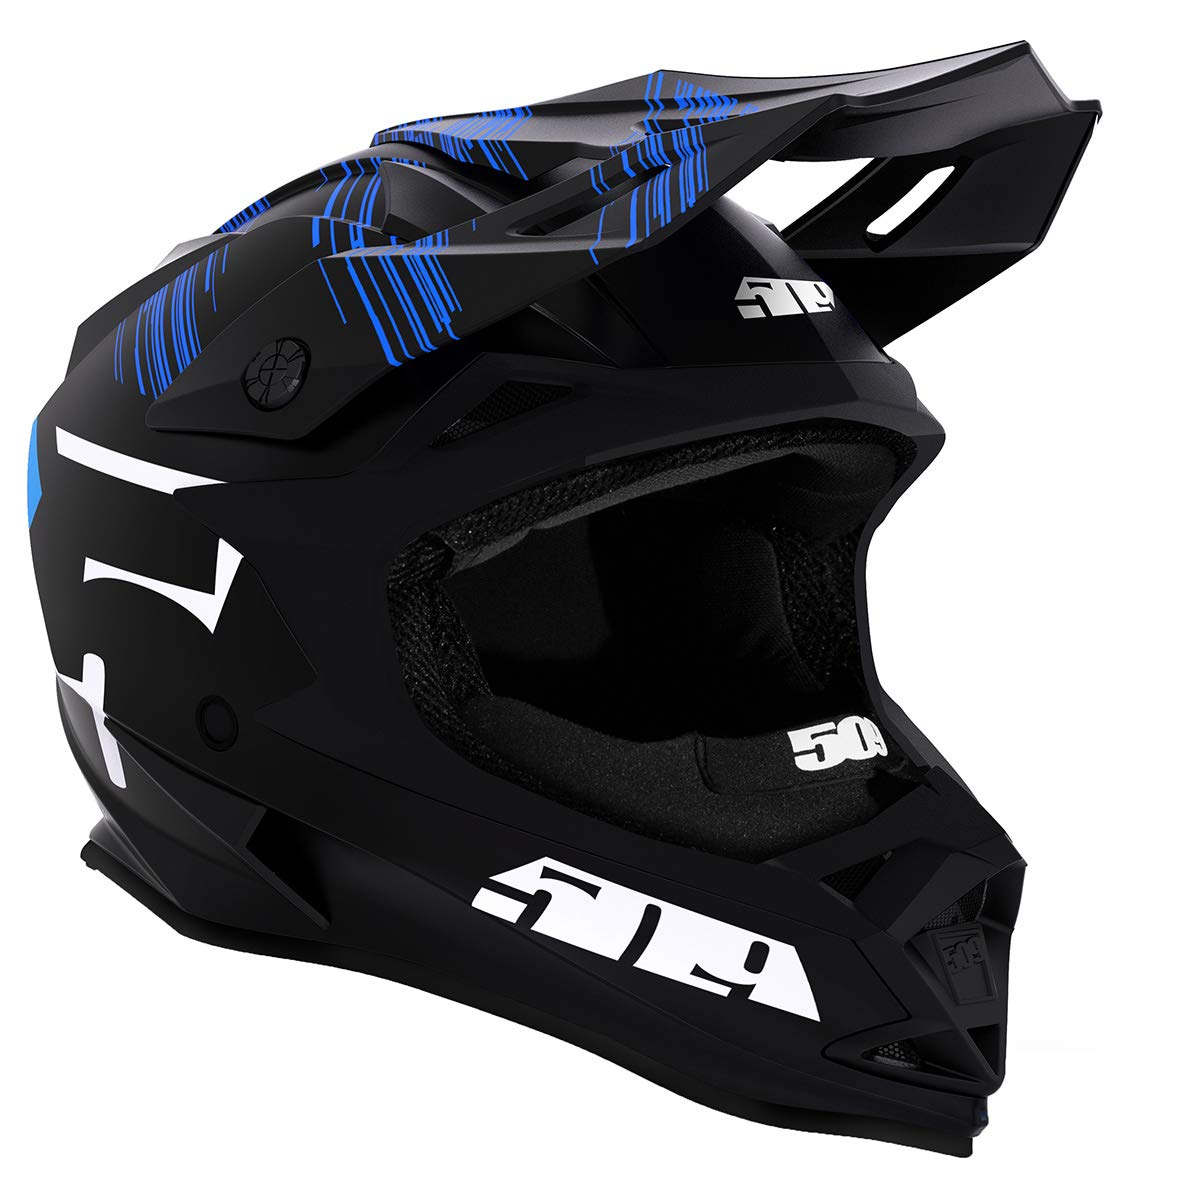 Particle Blue - 2X-Large Altitude with Fidlock 509 Altitude Helmet with Fidlock